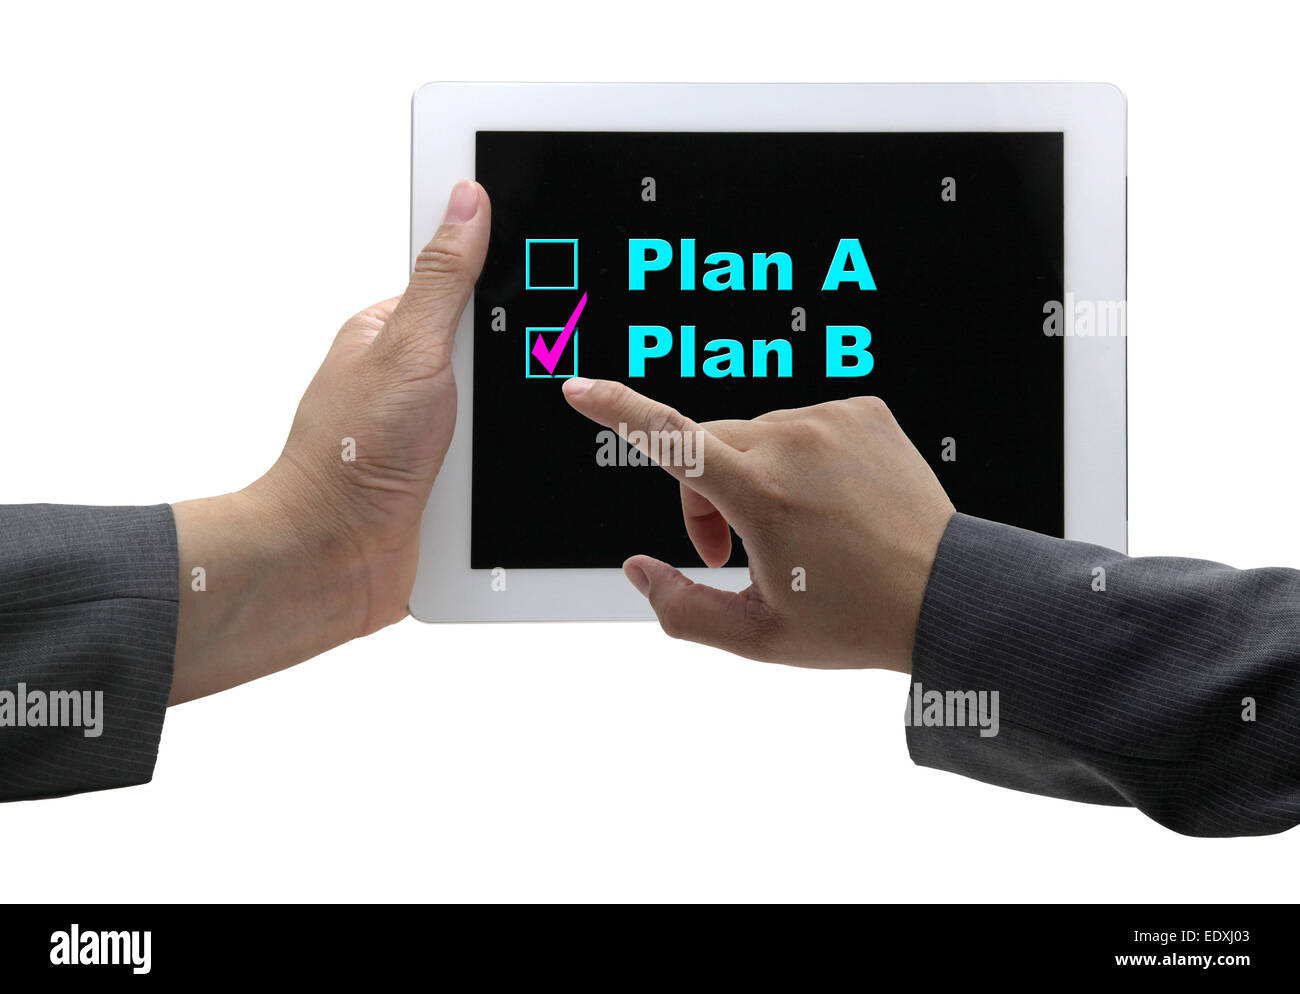 asian Businessman hand choosing plan B option on touch screen tablet - Stock Image